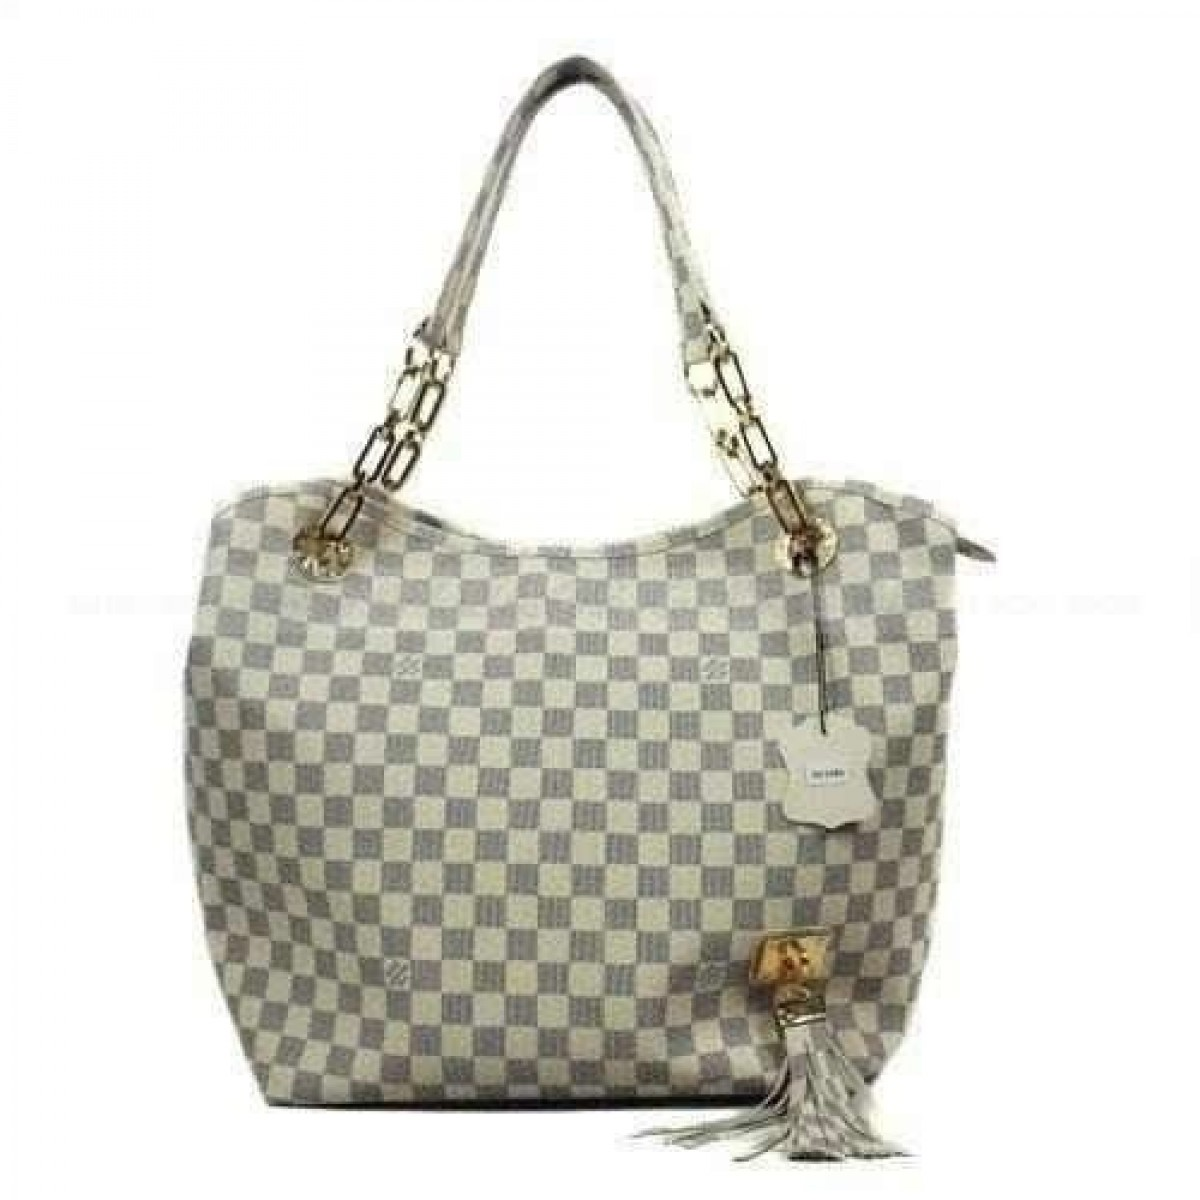 6dec319a36f44 Réplica de Bolsa Louis Vuitton Grife Whisper Damier Azur